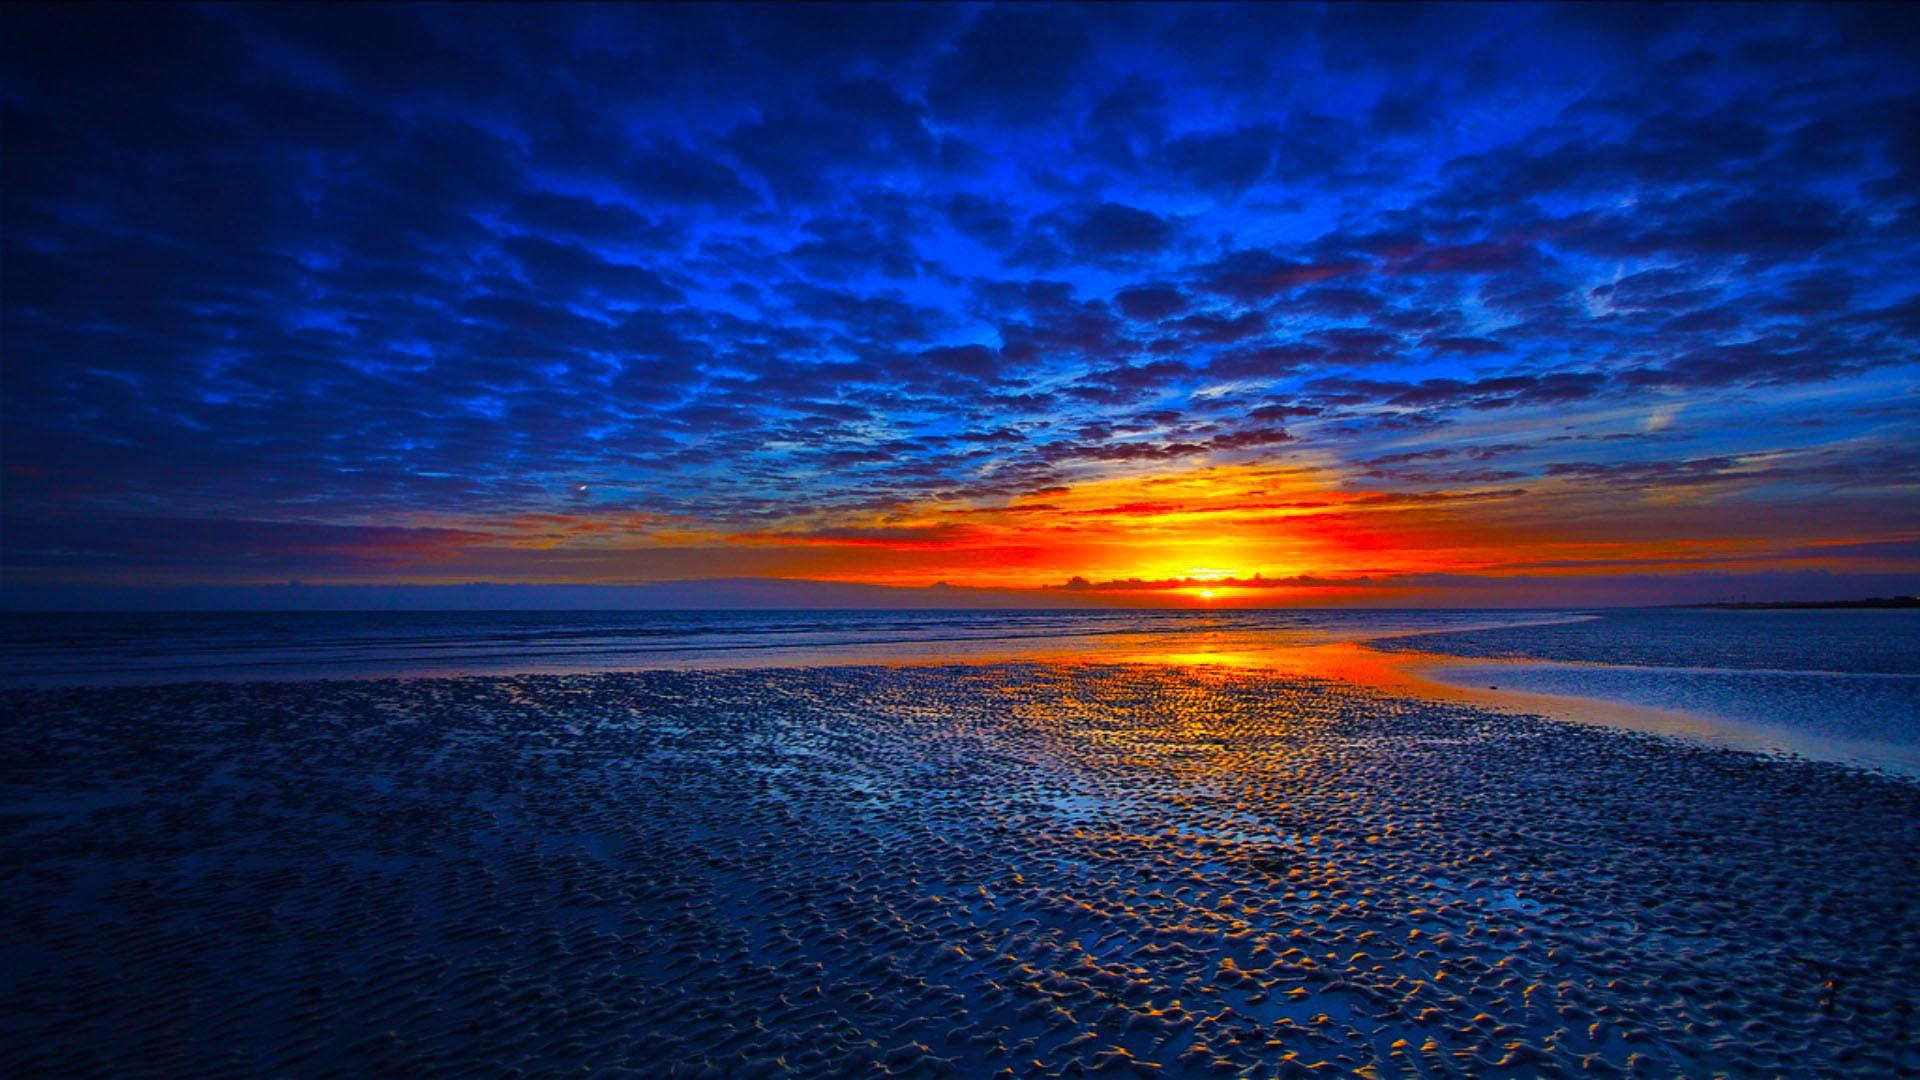 sunrise-wide-hd-wallpaper-download-sunrise-images-free.